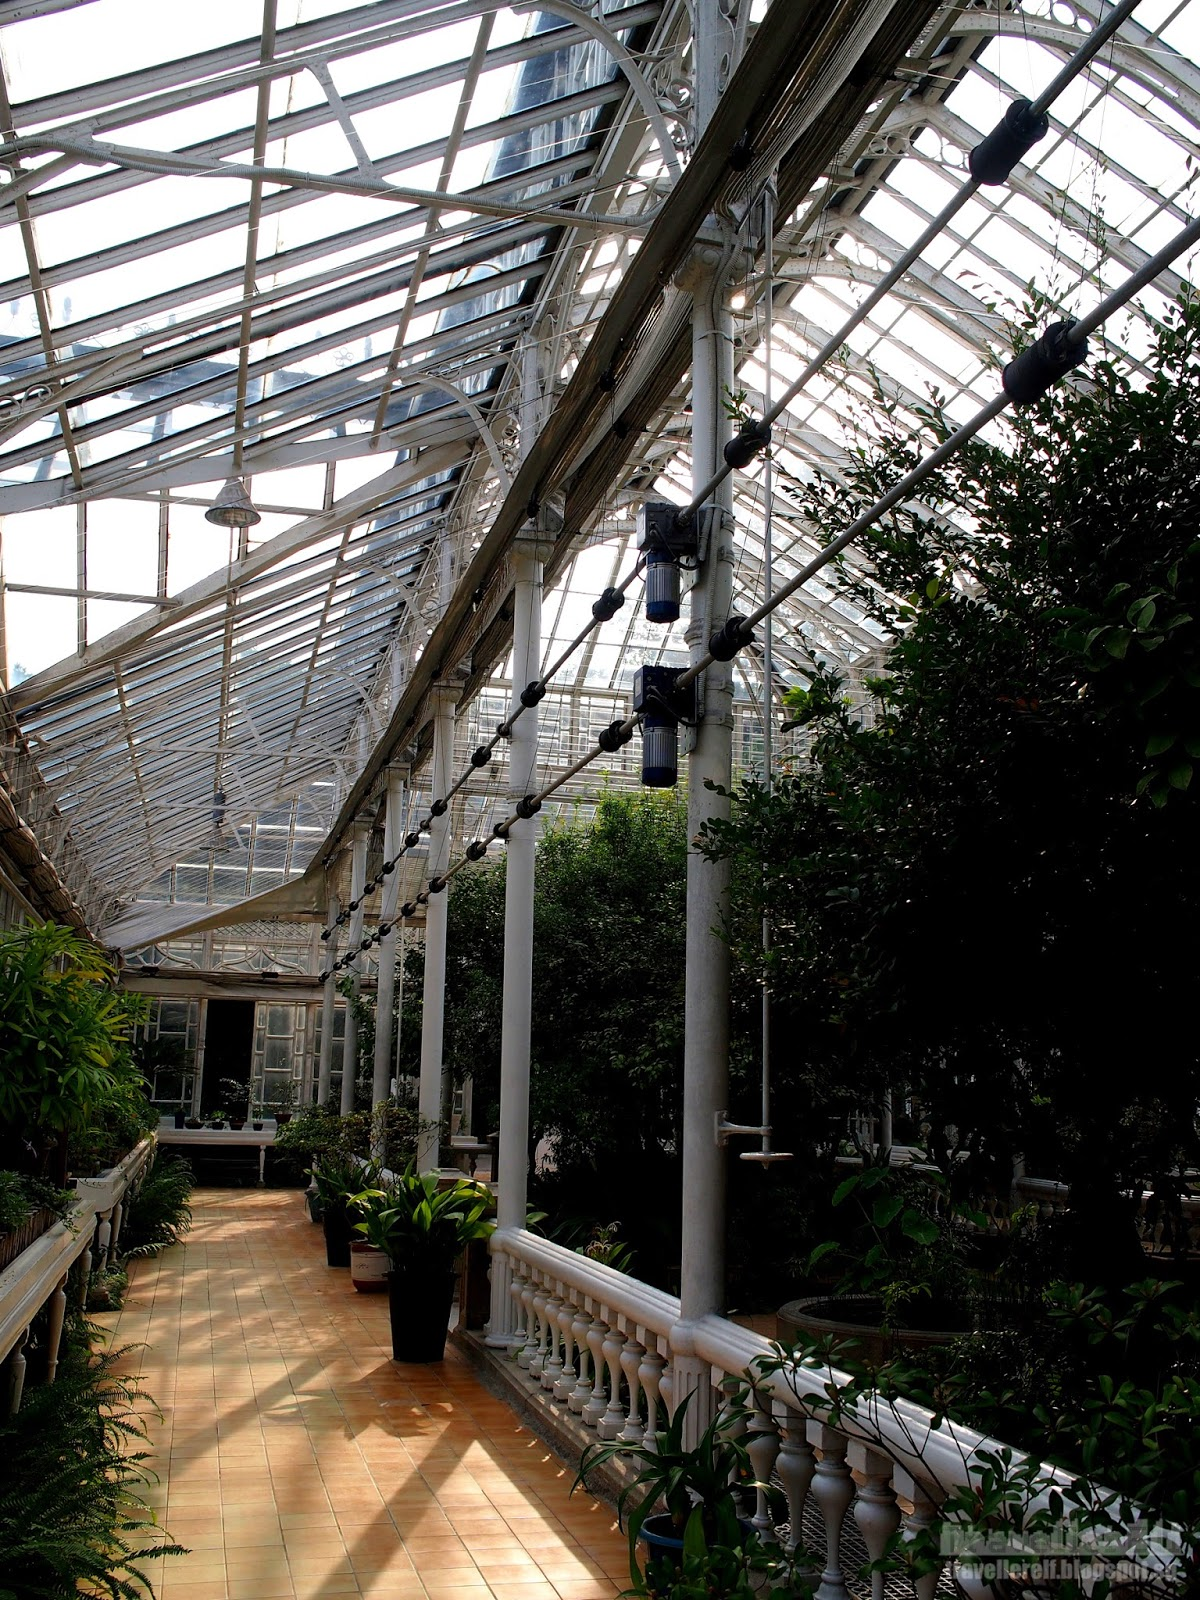 Glass House Wisconsin : Daeonsil 대온실 the great glass house of changgyeonggung